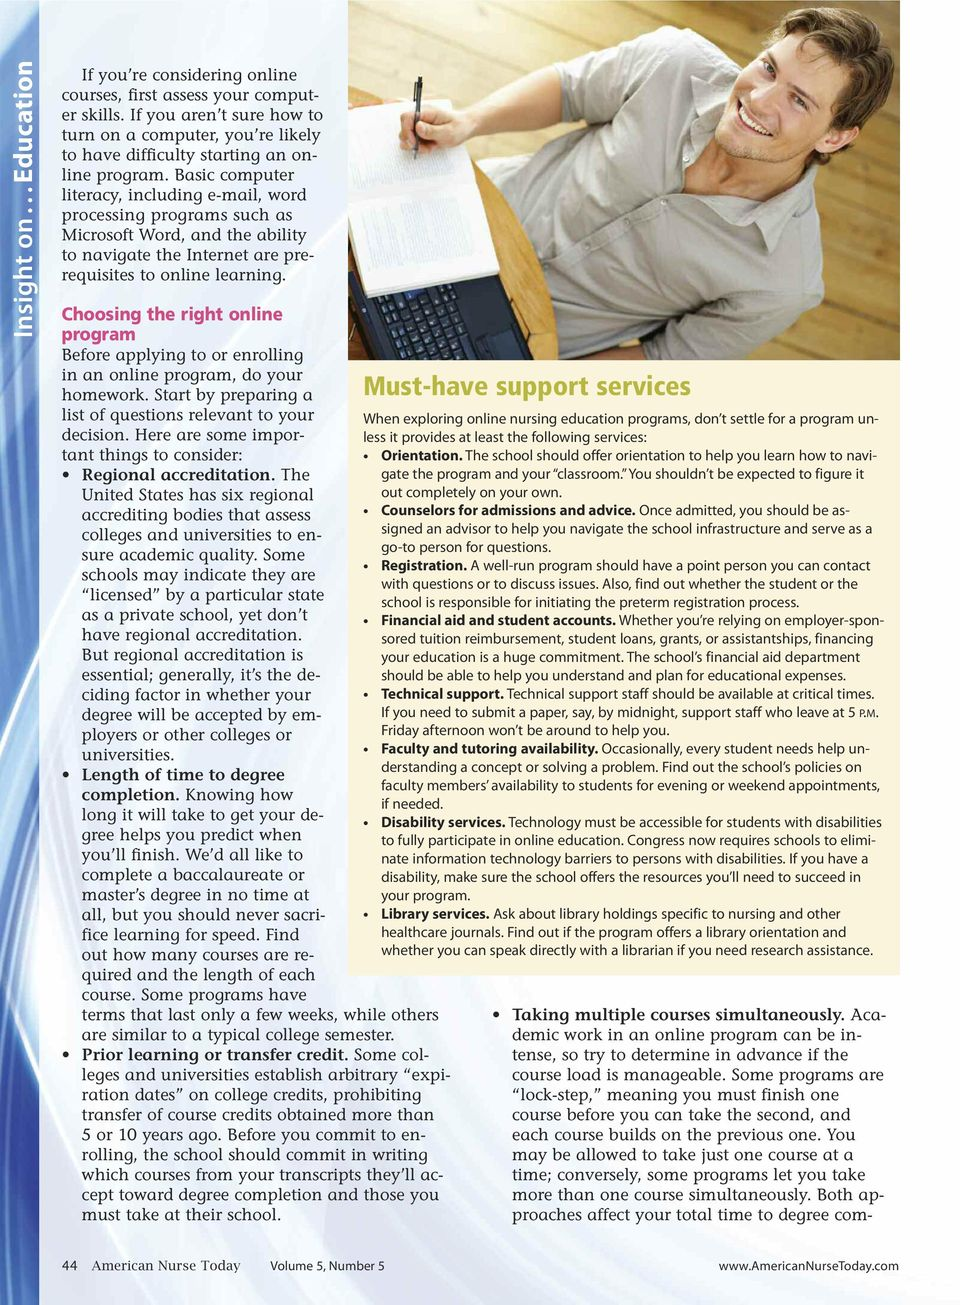 Basic computer literacy, including e-mail, word processing programs such as Microsoft Word, and the ability to navigate the Internet are prerequisites to online learning.